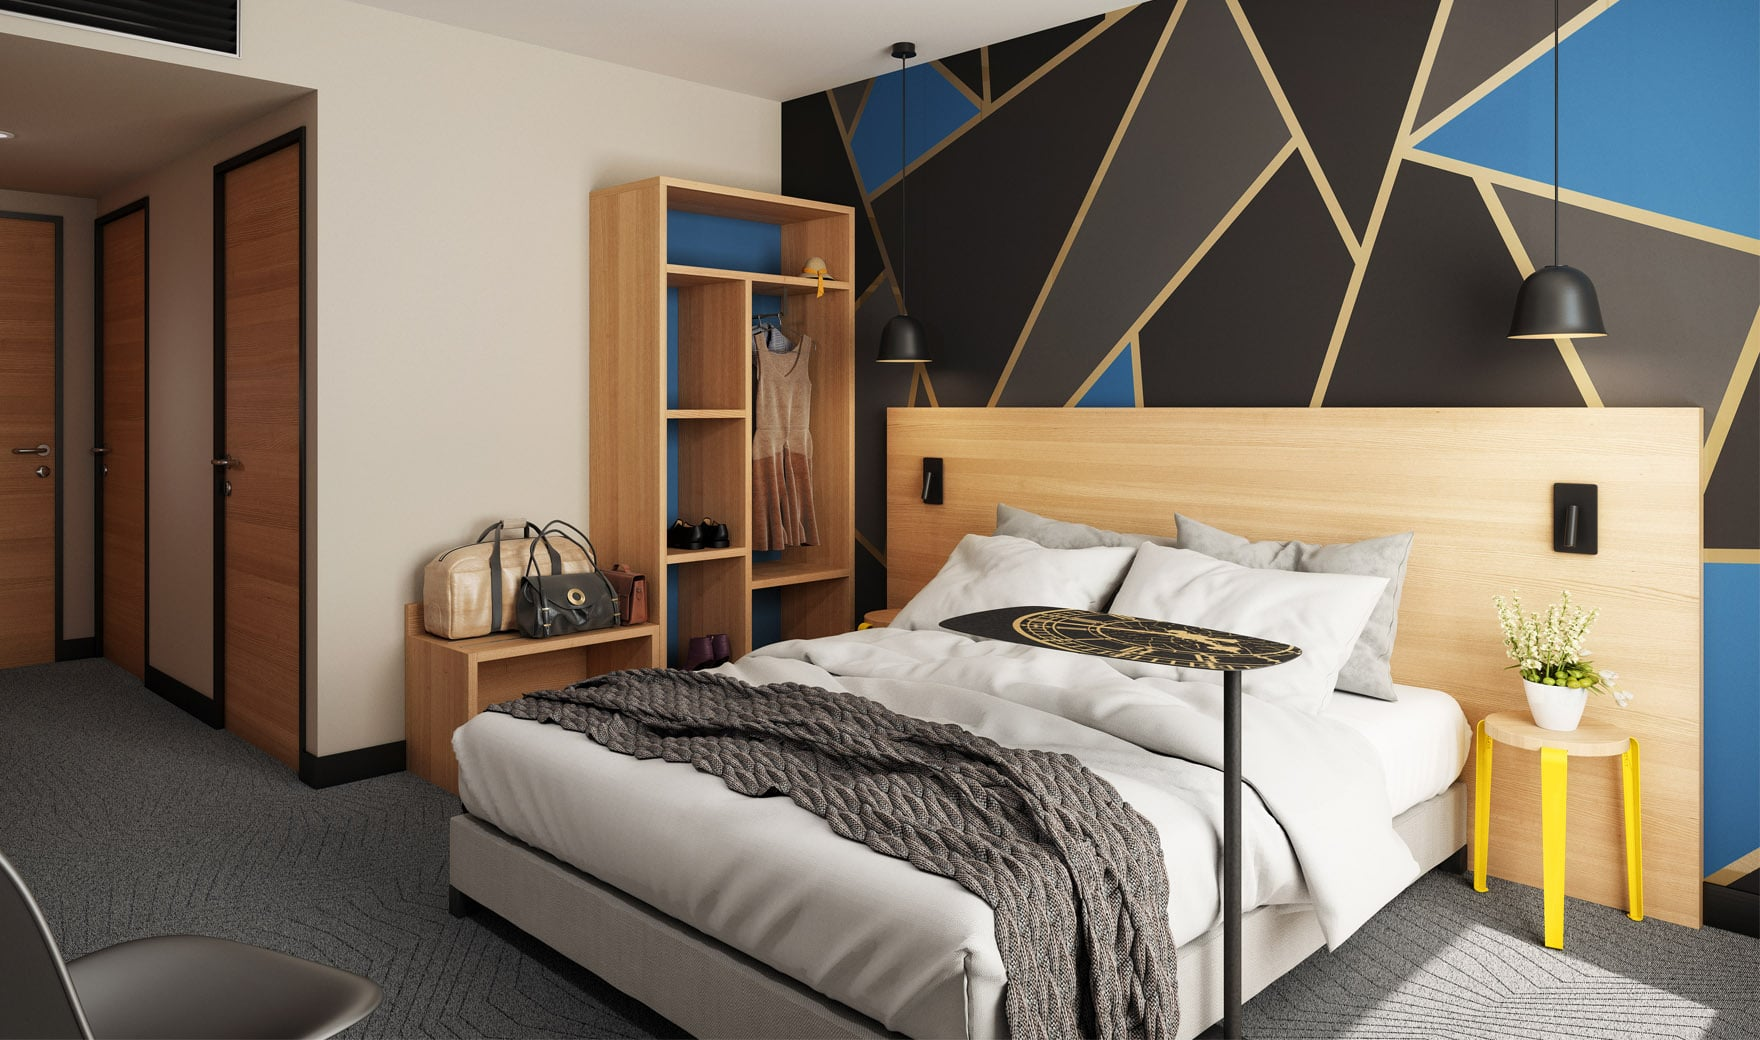 hotel-ibis-budget-style-petite-foret-cba-2